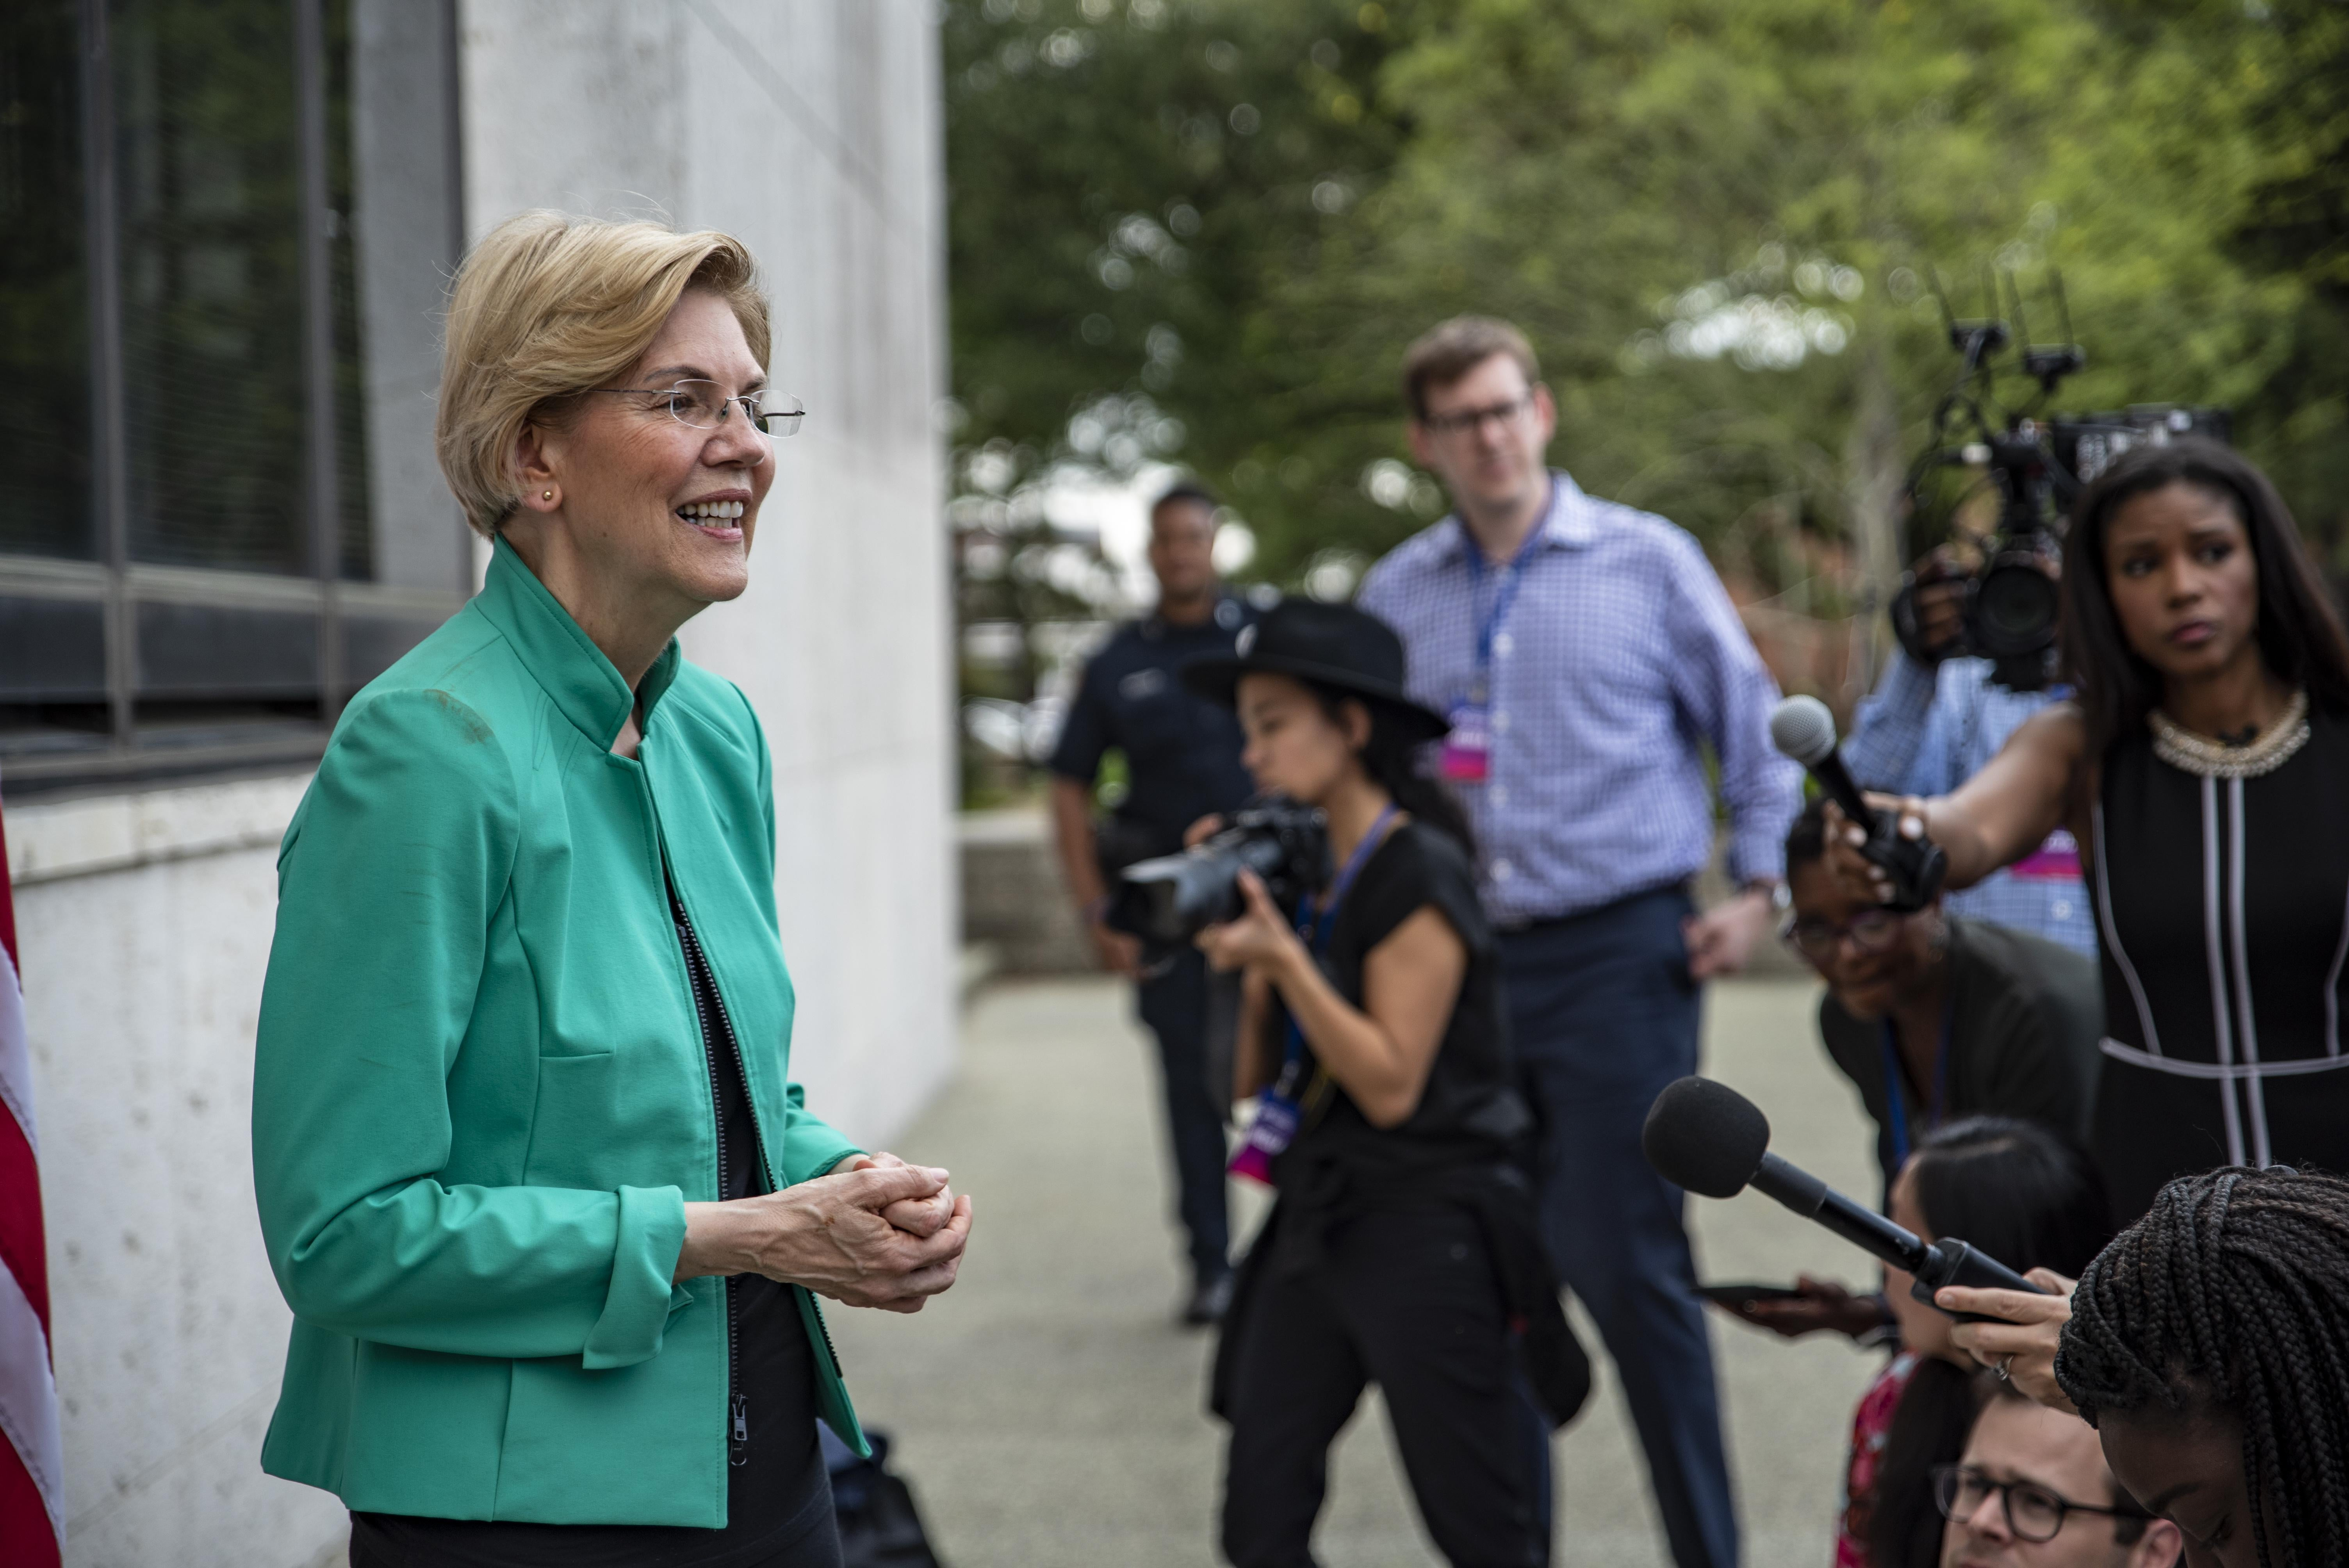 HOUSTON, TX - APRIL 24: Democratic presidential candidate Sen. Elizabeth Warren (D-MA) speaks to members of the media after the She The People Presidential Forum at Texas Southern University on April 24, 2019 in Houston, Texas. Many of the Democrat presidential candidates are attending the forum to focus on issues important to women of color. (Photo by Sergio Flores/Getty Images)